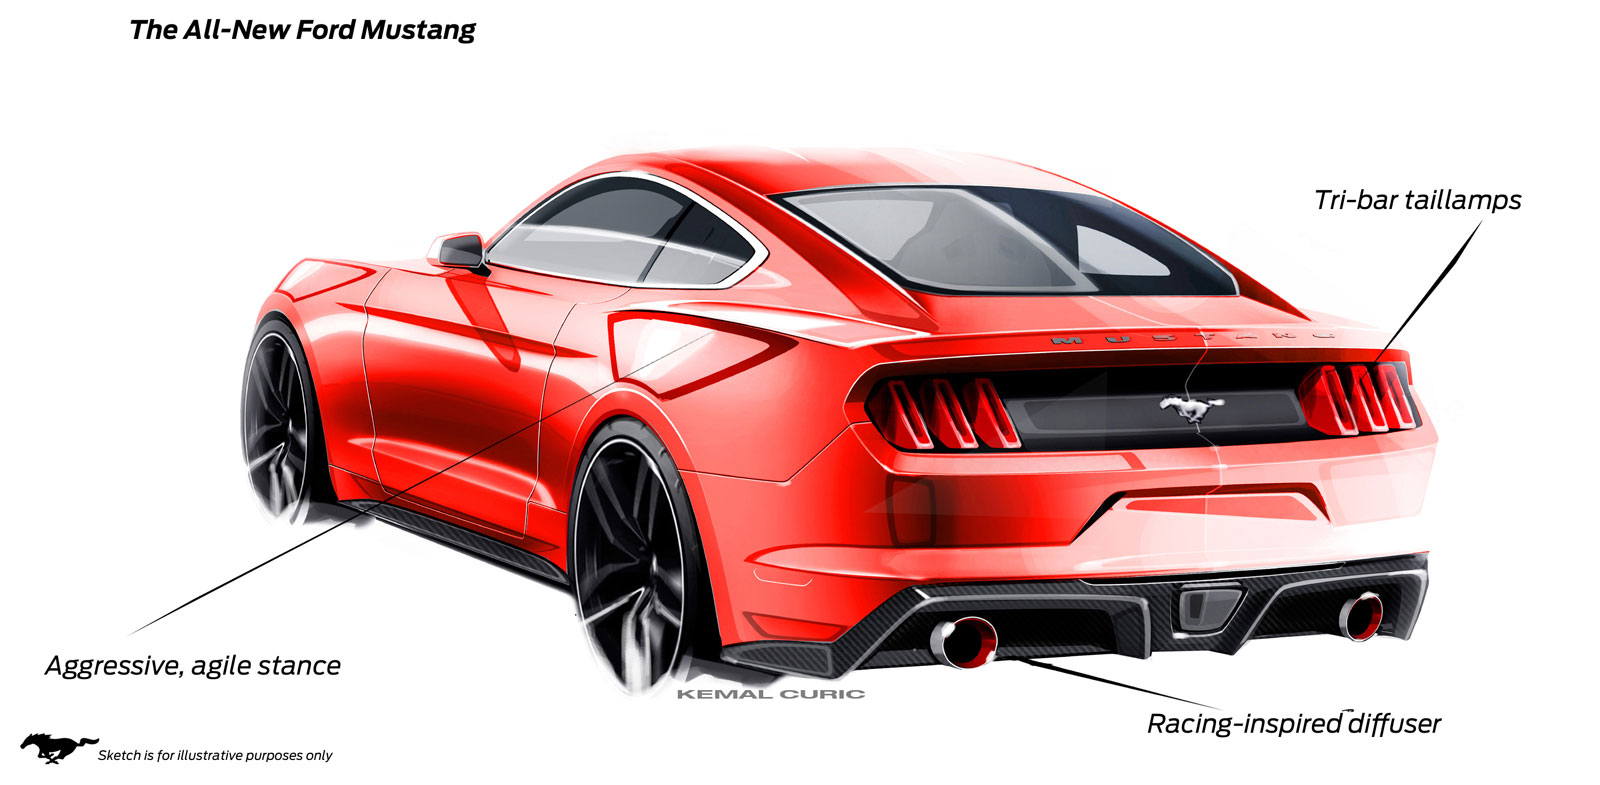 Ford mustang exterior design elements car body design for Exterior design elements